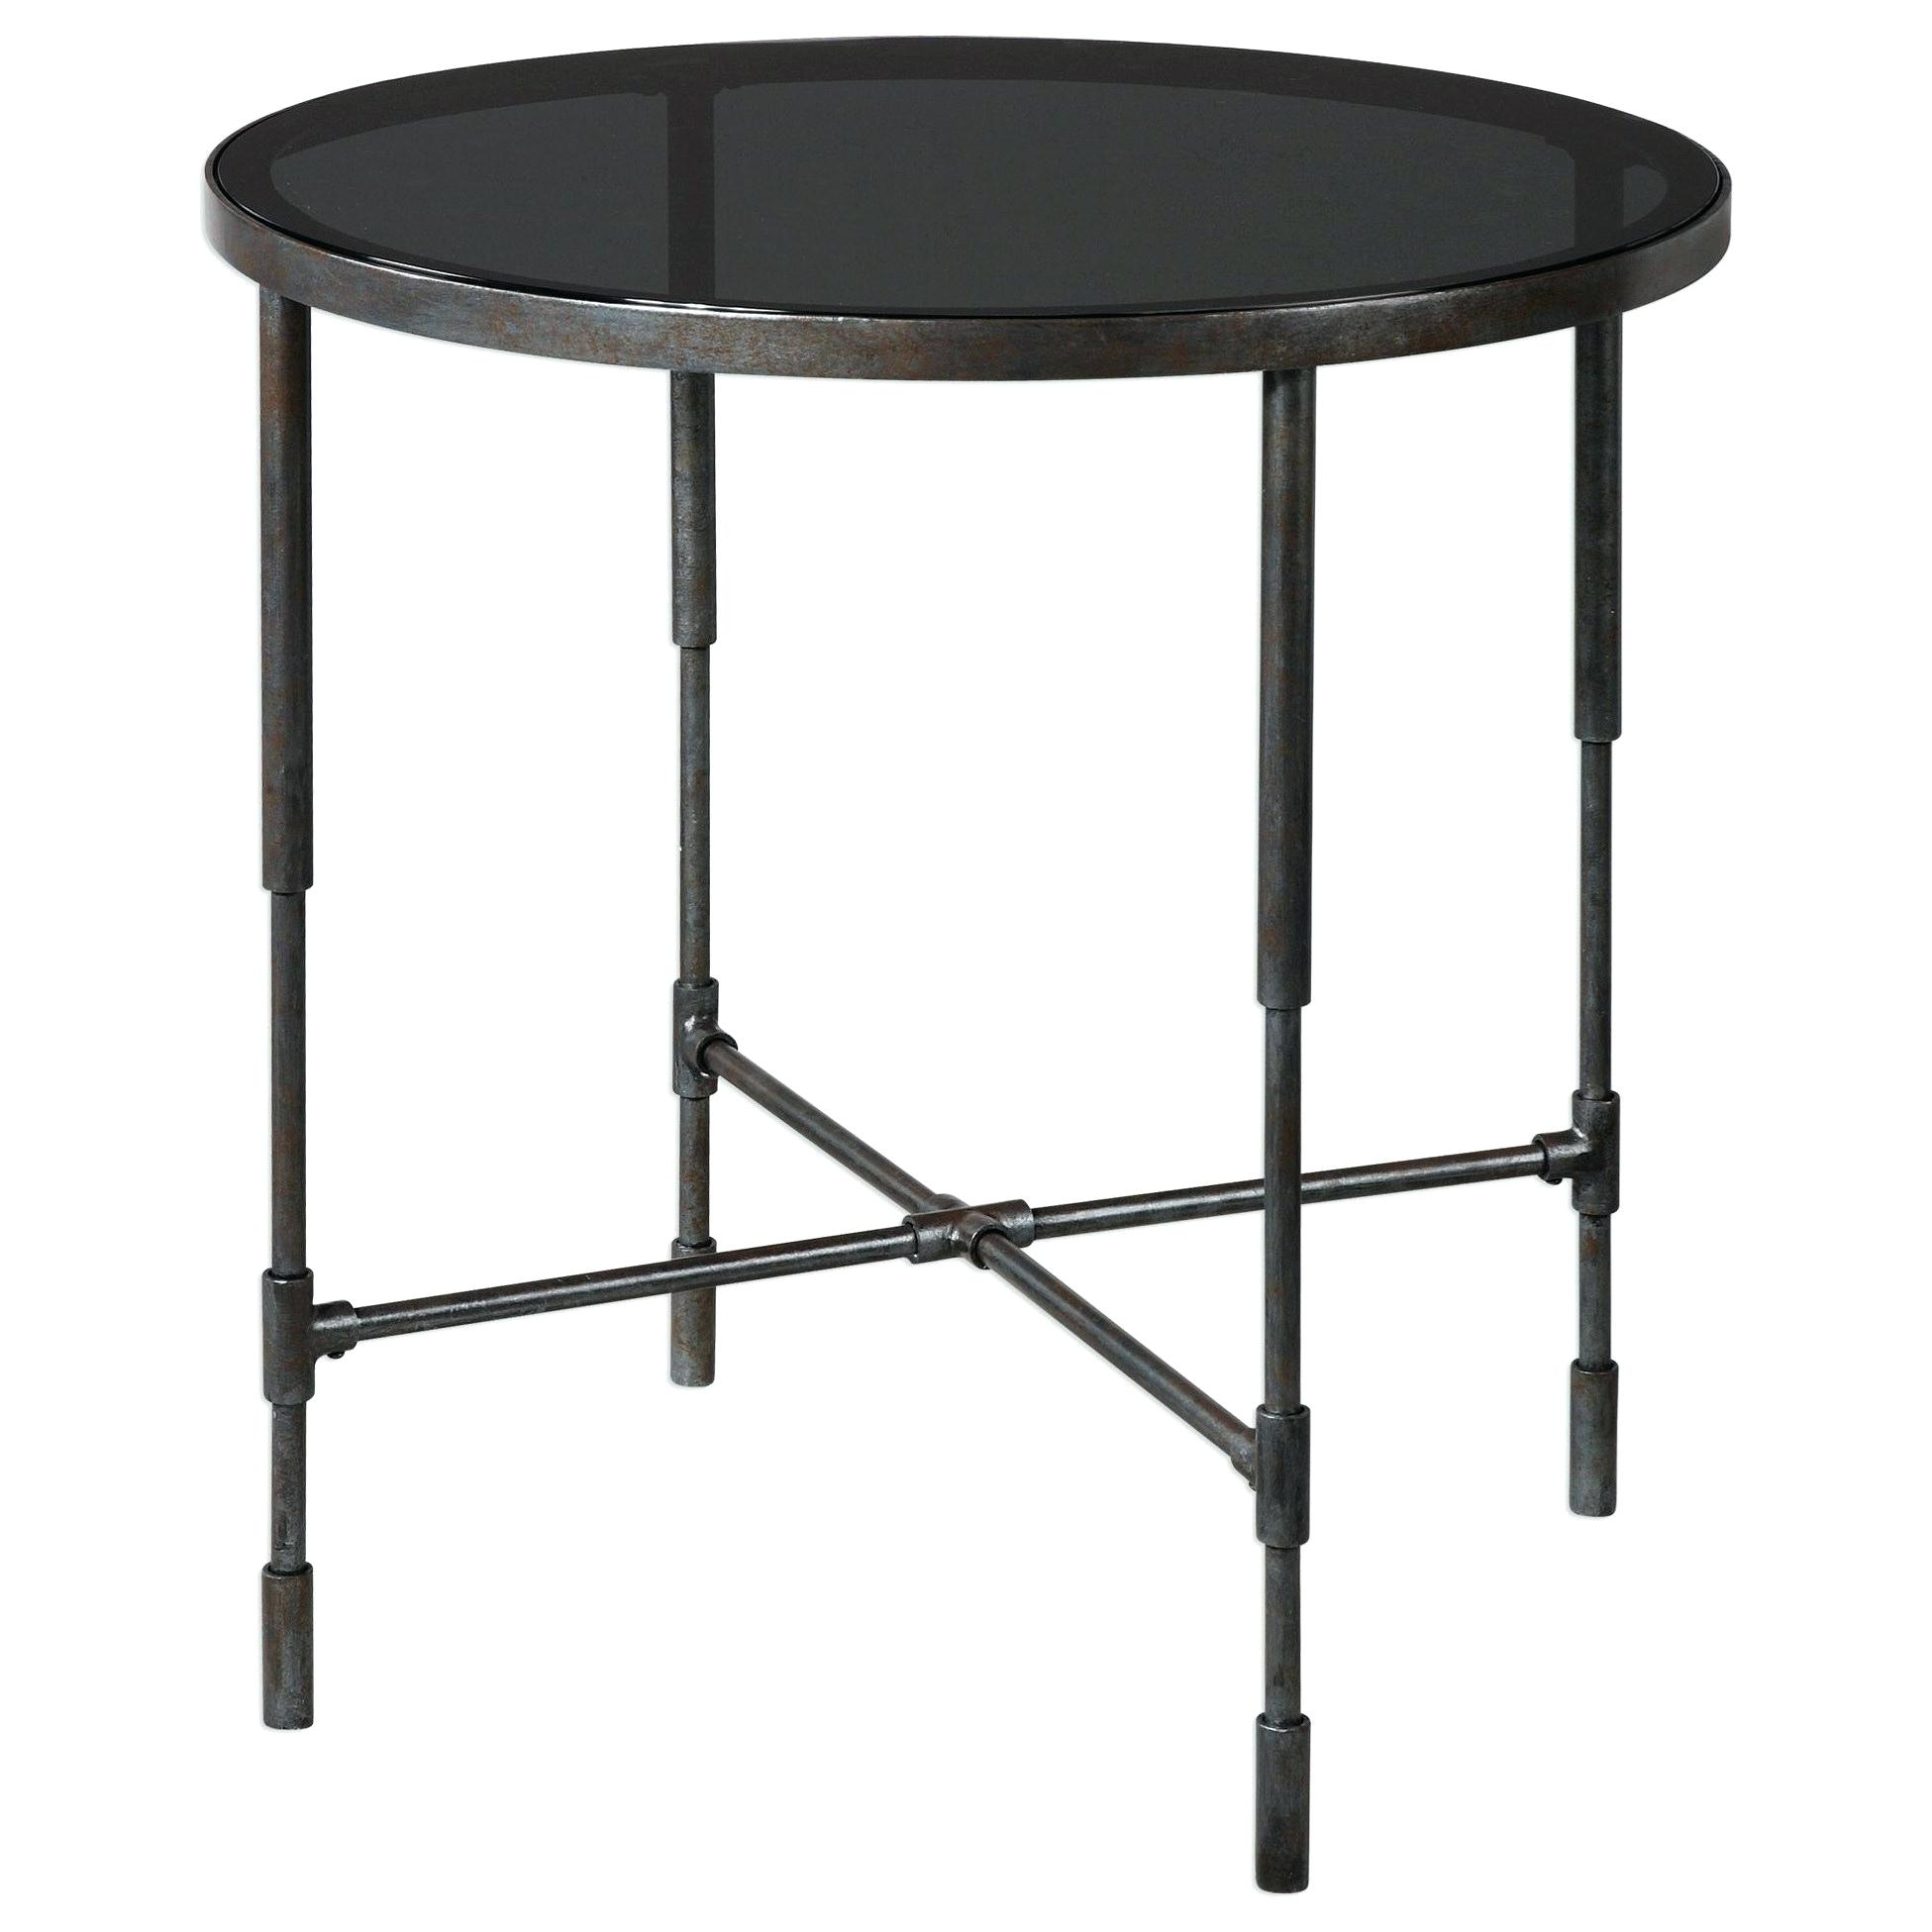 uttermost accent tables soulshine info furniture aged steel table kitchen island ideas dice kids nic wicker storage baskets make your own barn door hardware wine bar end